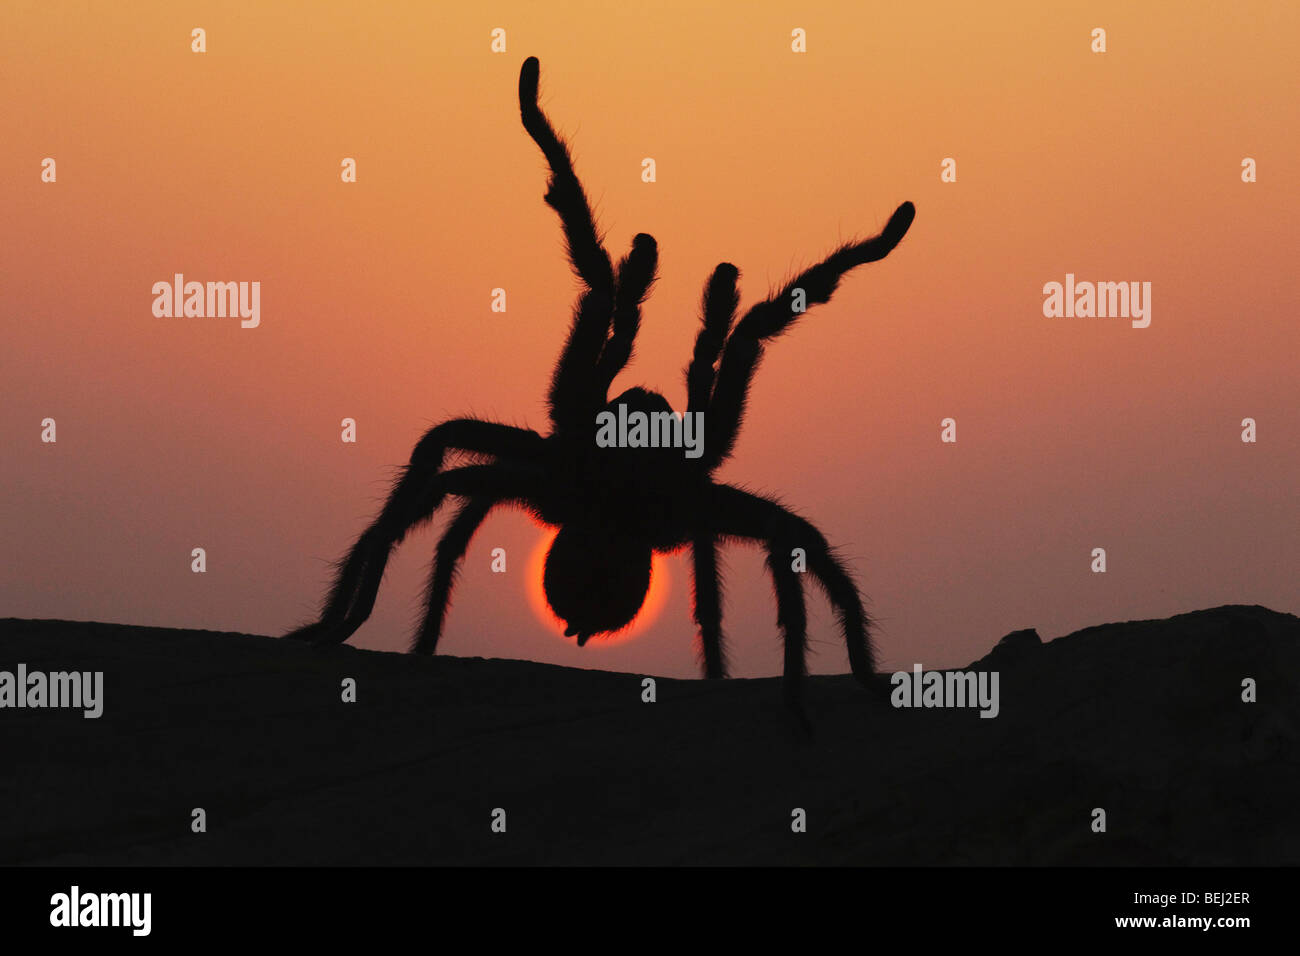 Texas Brown Tarantula (Aphonopelma hentzi), adult at sunset in defense posture, Sinton, Corpus Christi, Coastal - Stock Image